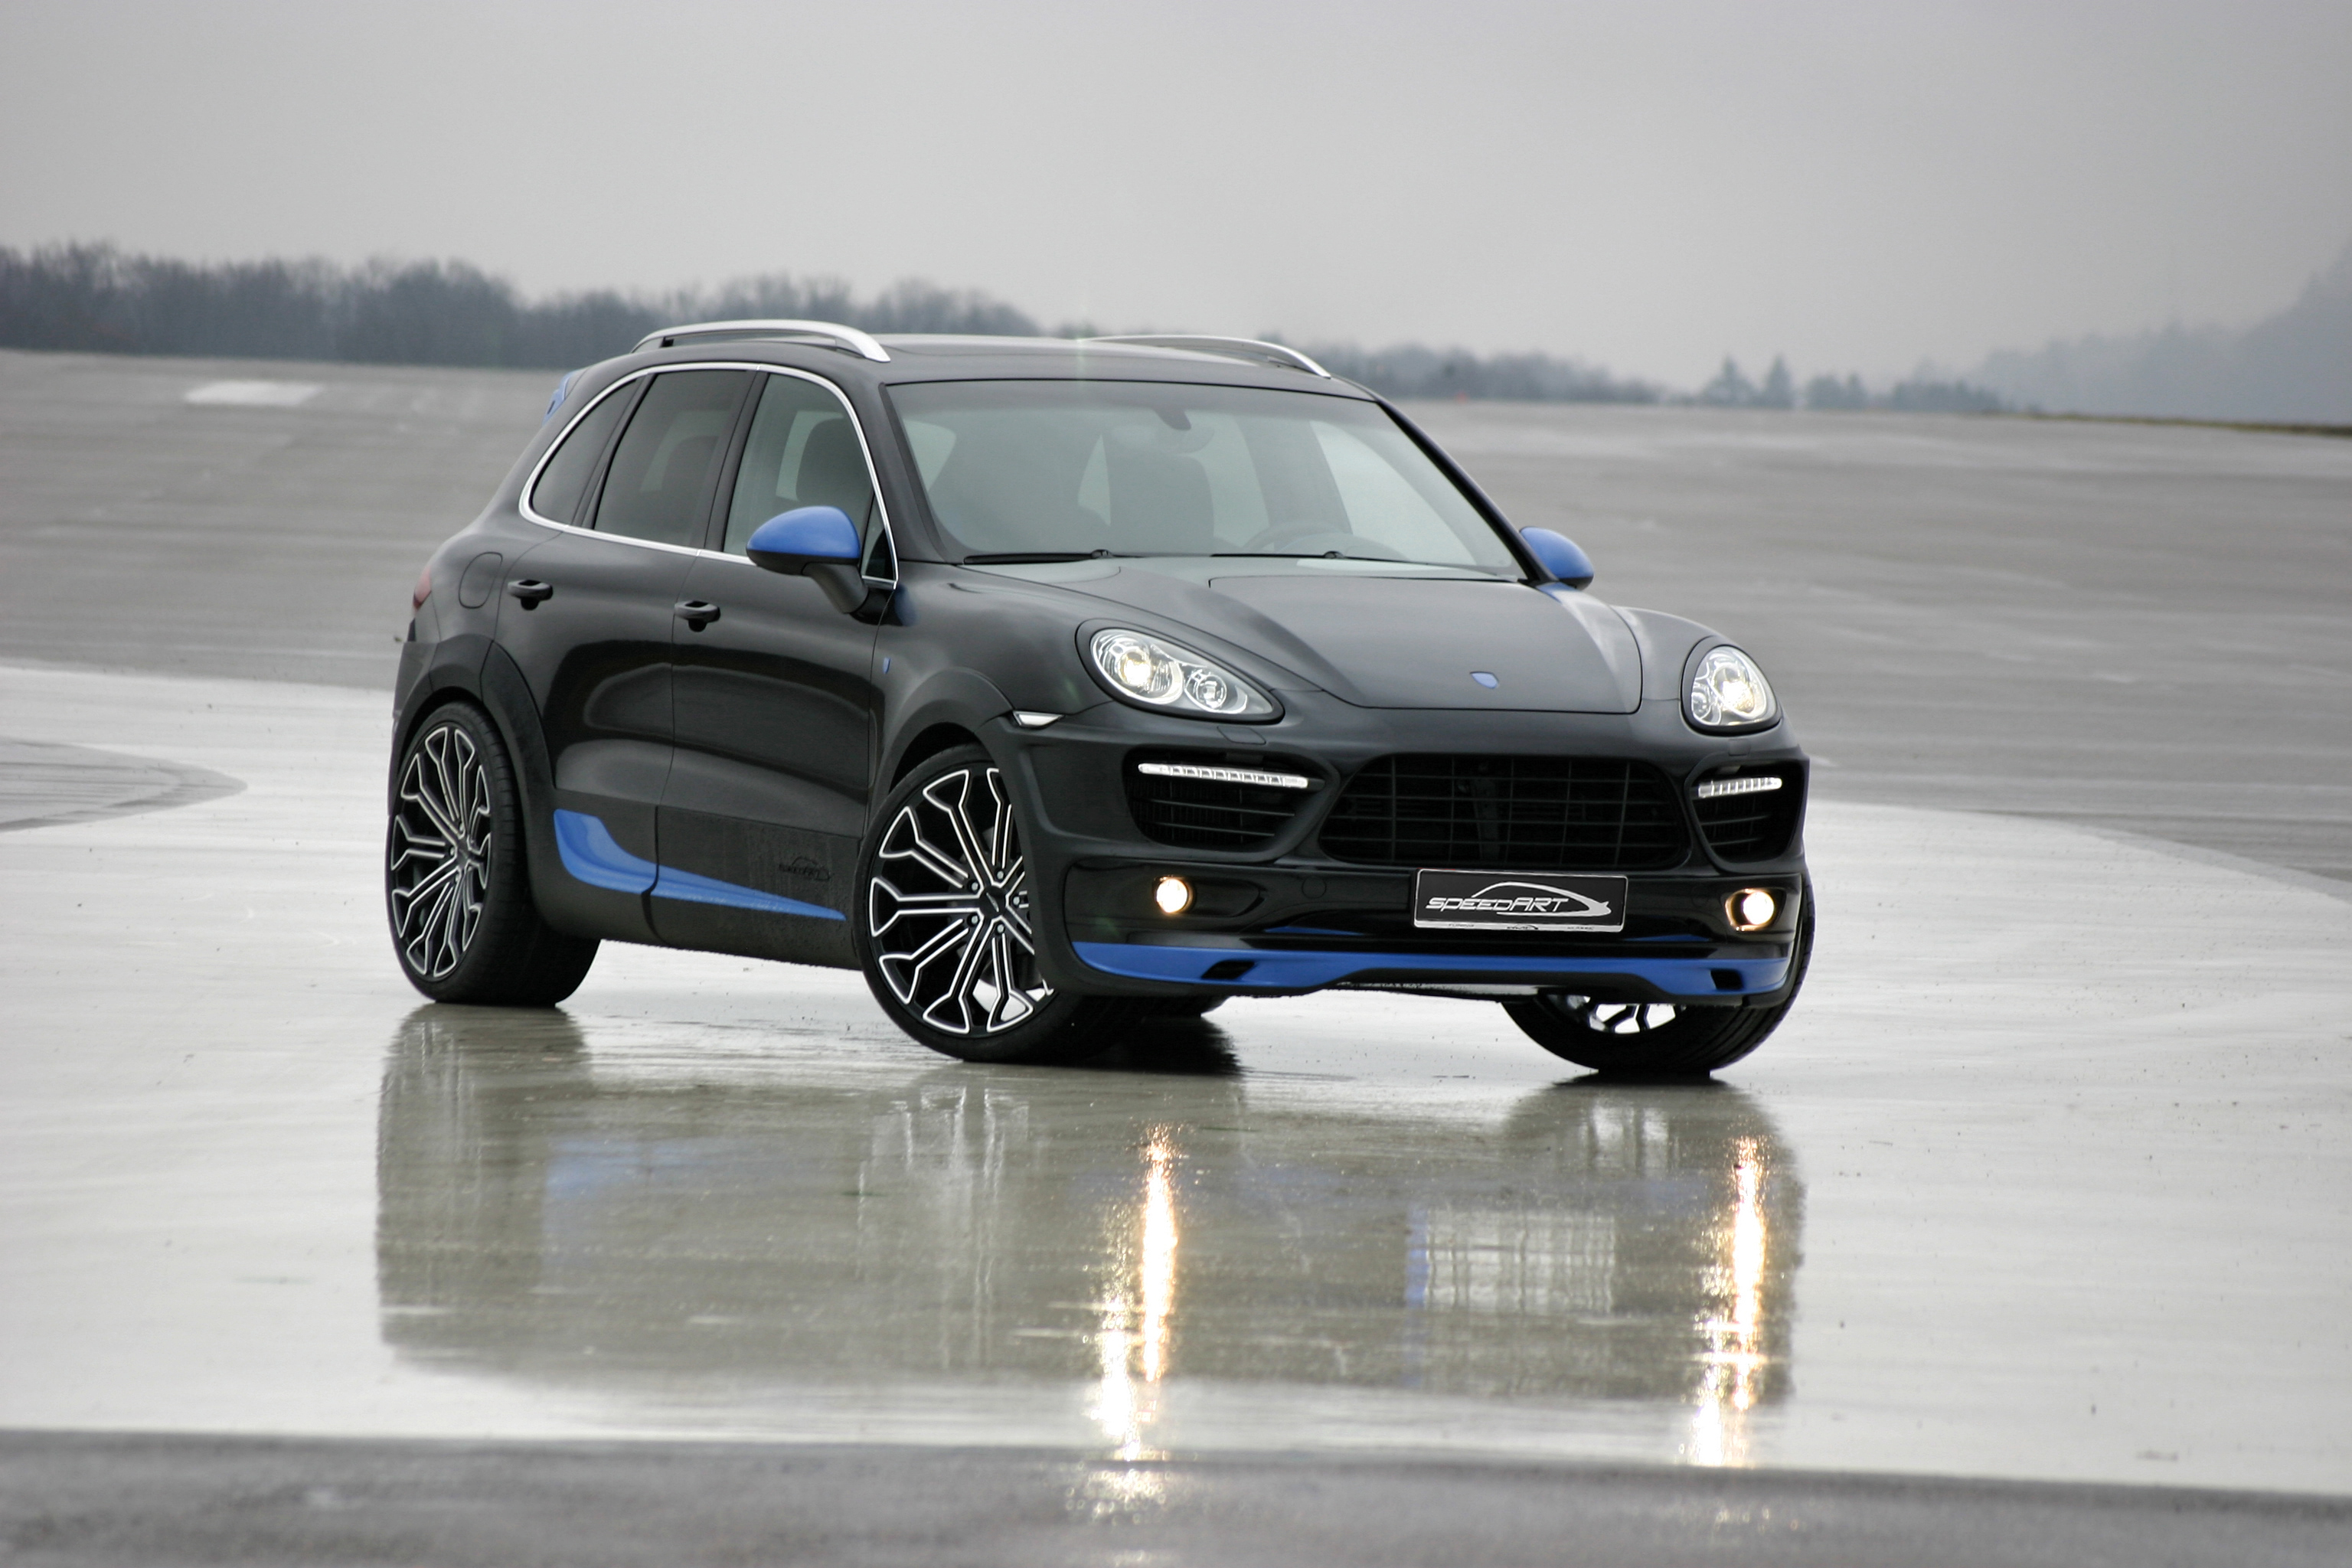 Speedart Titan Evo Xl 600 Mods For The Porsche Cayenne Turbo Cartype